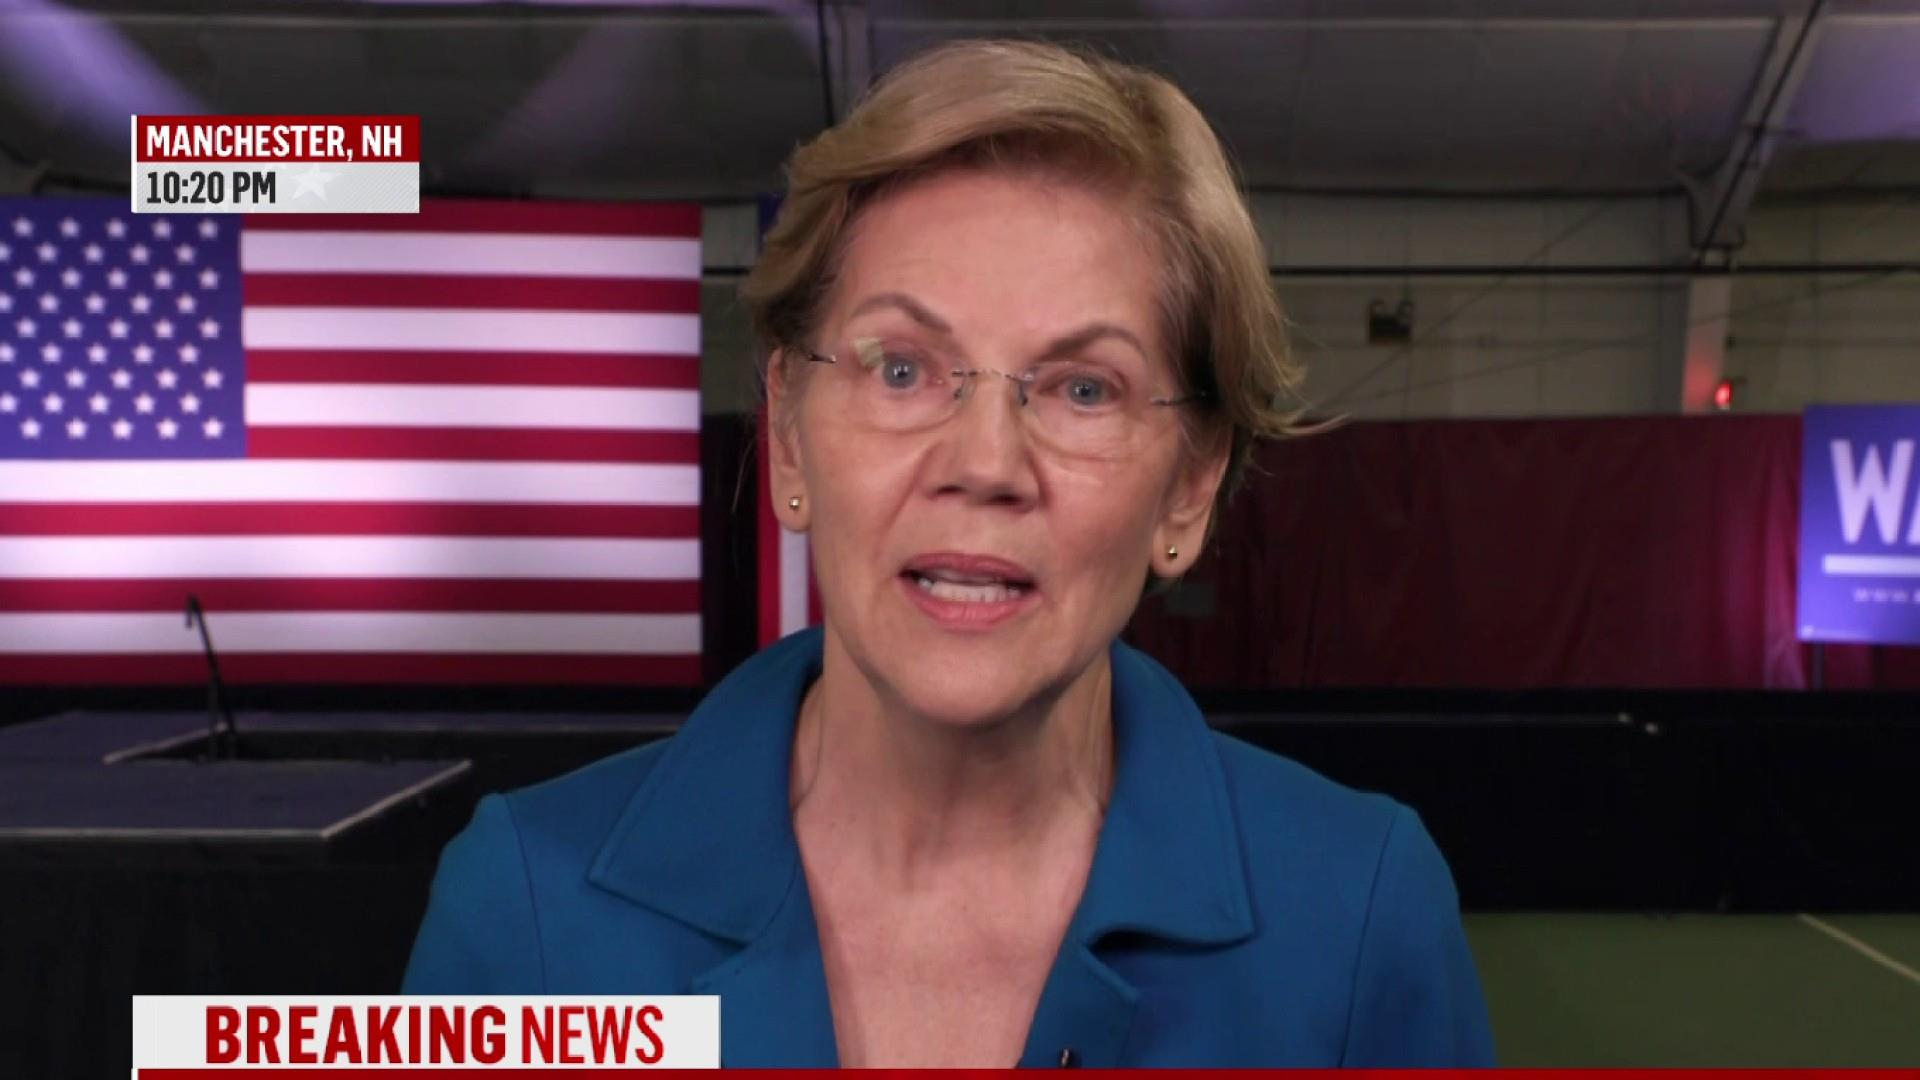 Warren faces pressure to revive fighter persona after 'unity' pitch falls flat